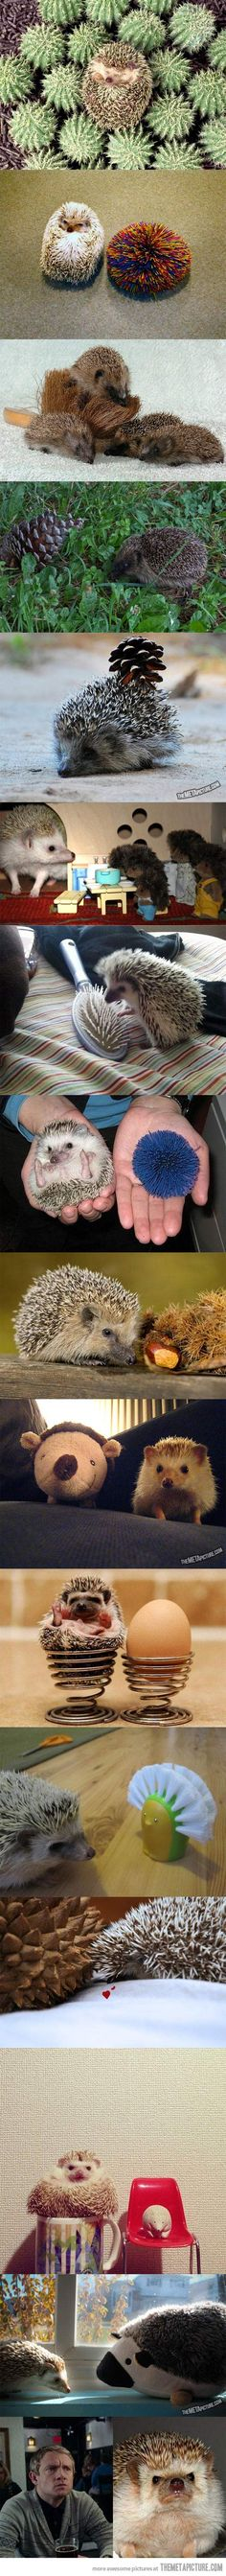 16 hedgehogs with things that look like hedgehogs… I don't see he difference between the pictures! Haha!